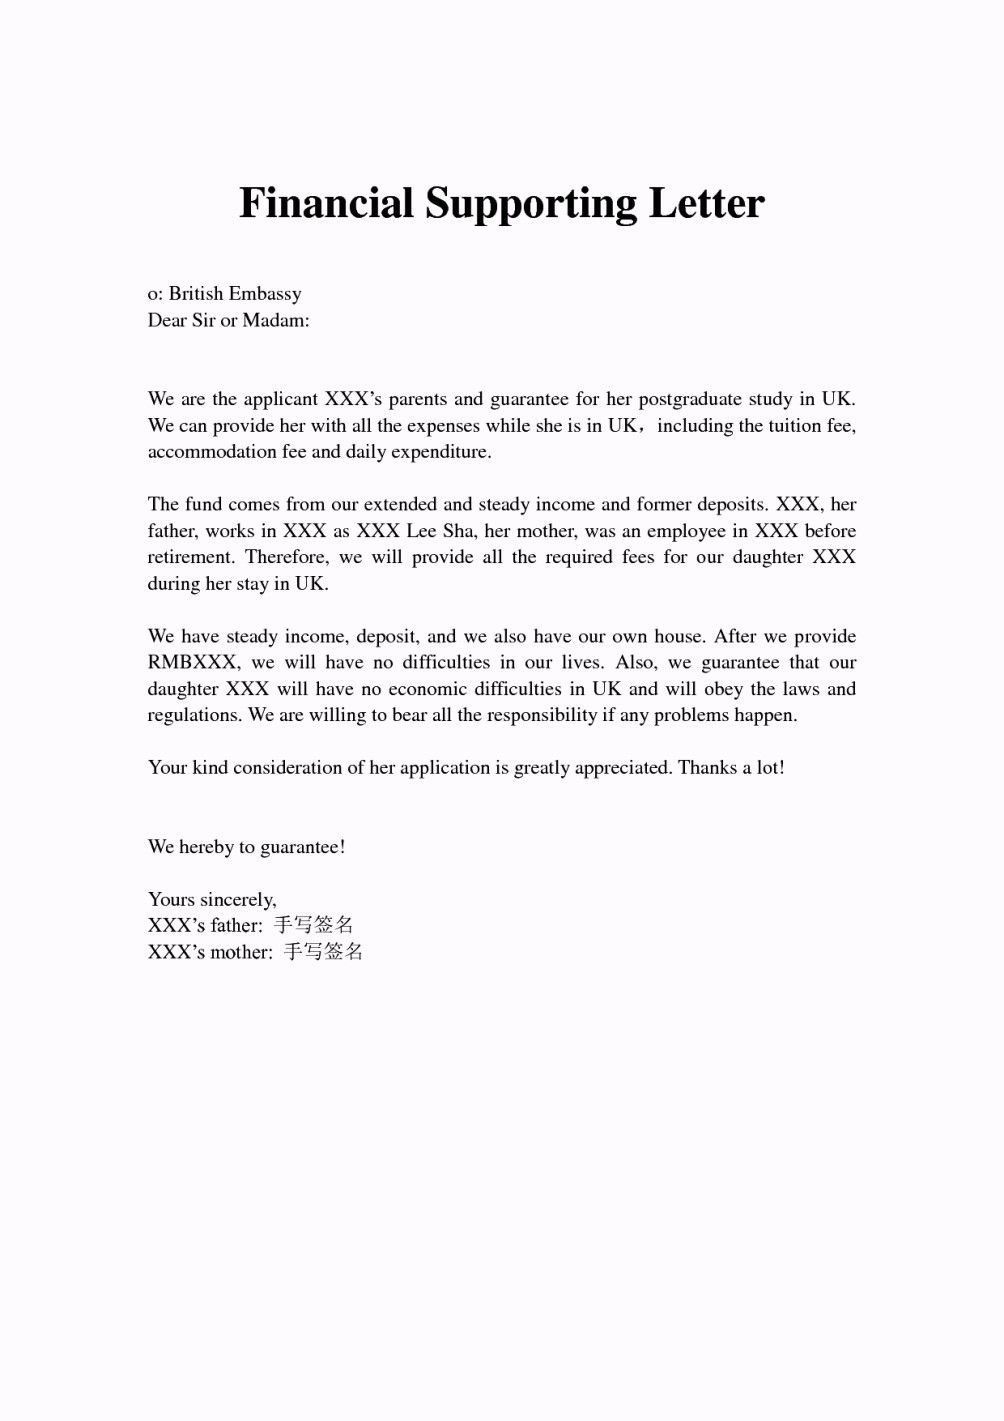 Letter Of Financial Support Template - Financial Support Letter From Parents Letter Pinterest